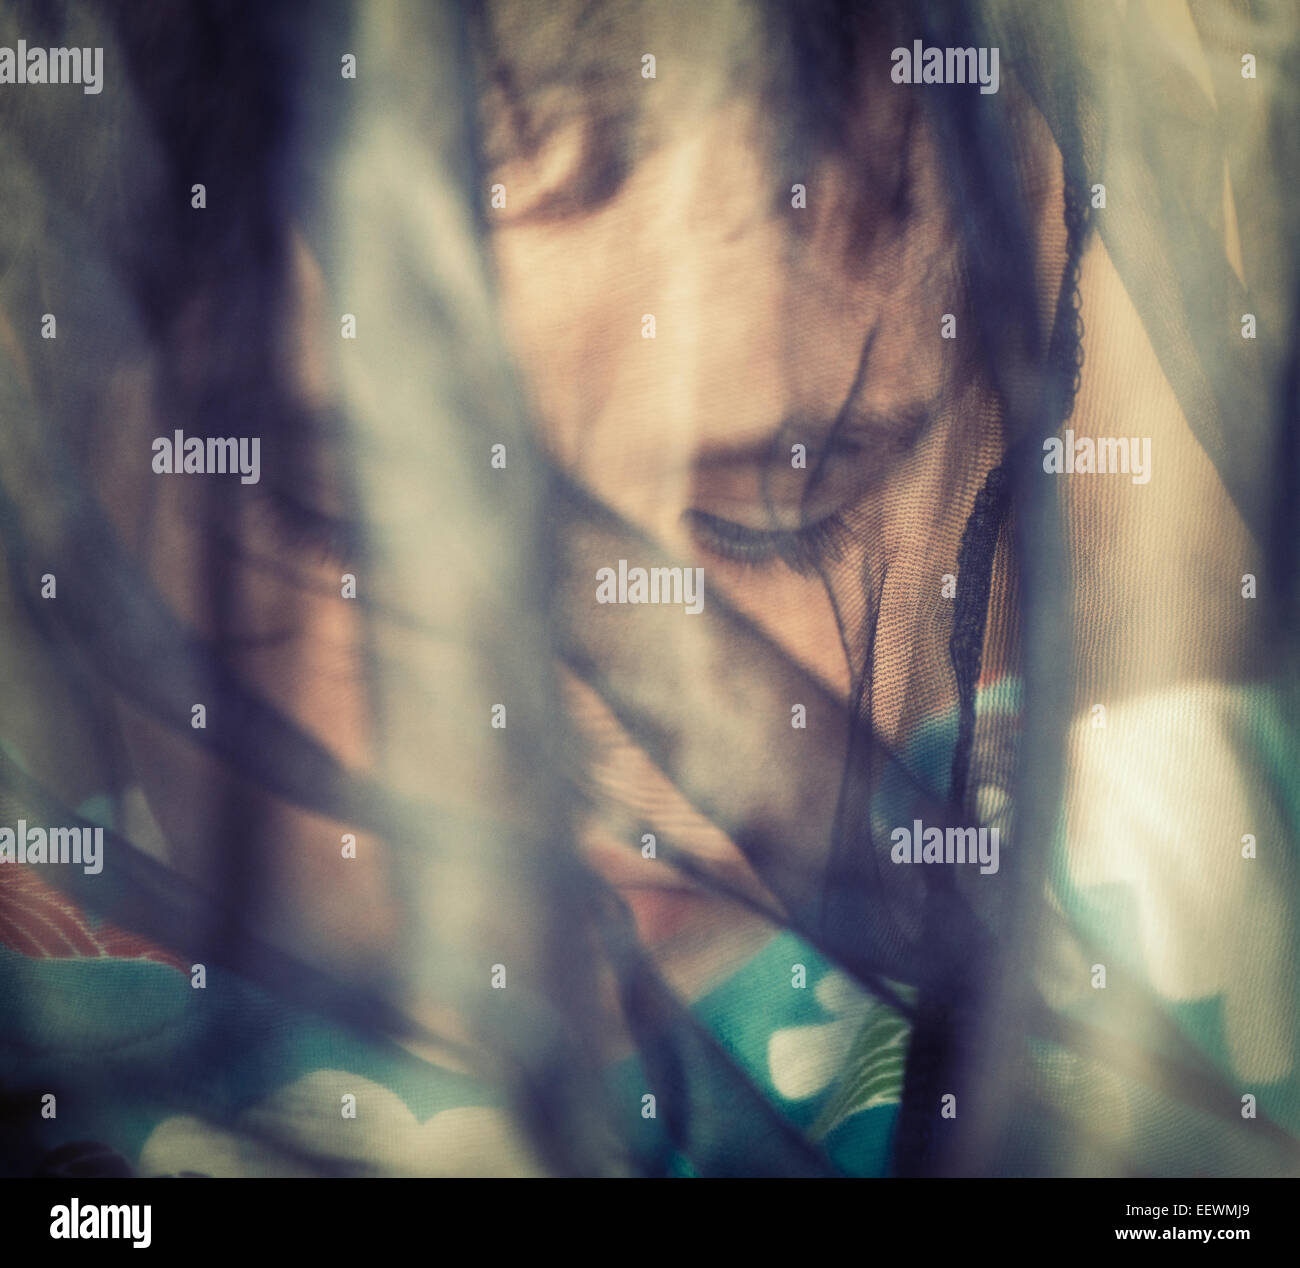 Portrait of girl with fabric, veil covering her face She looks troubled and pensive Conceptual image of childhood - Stock Image